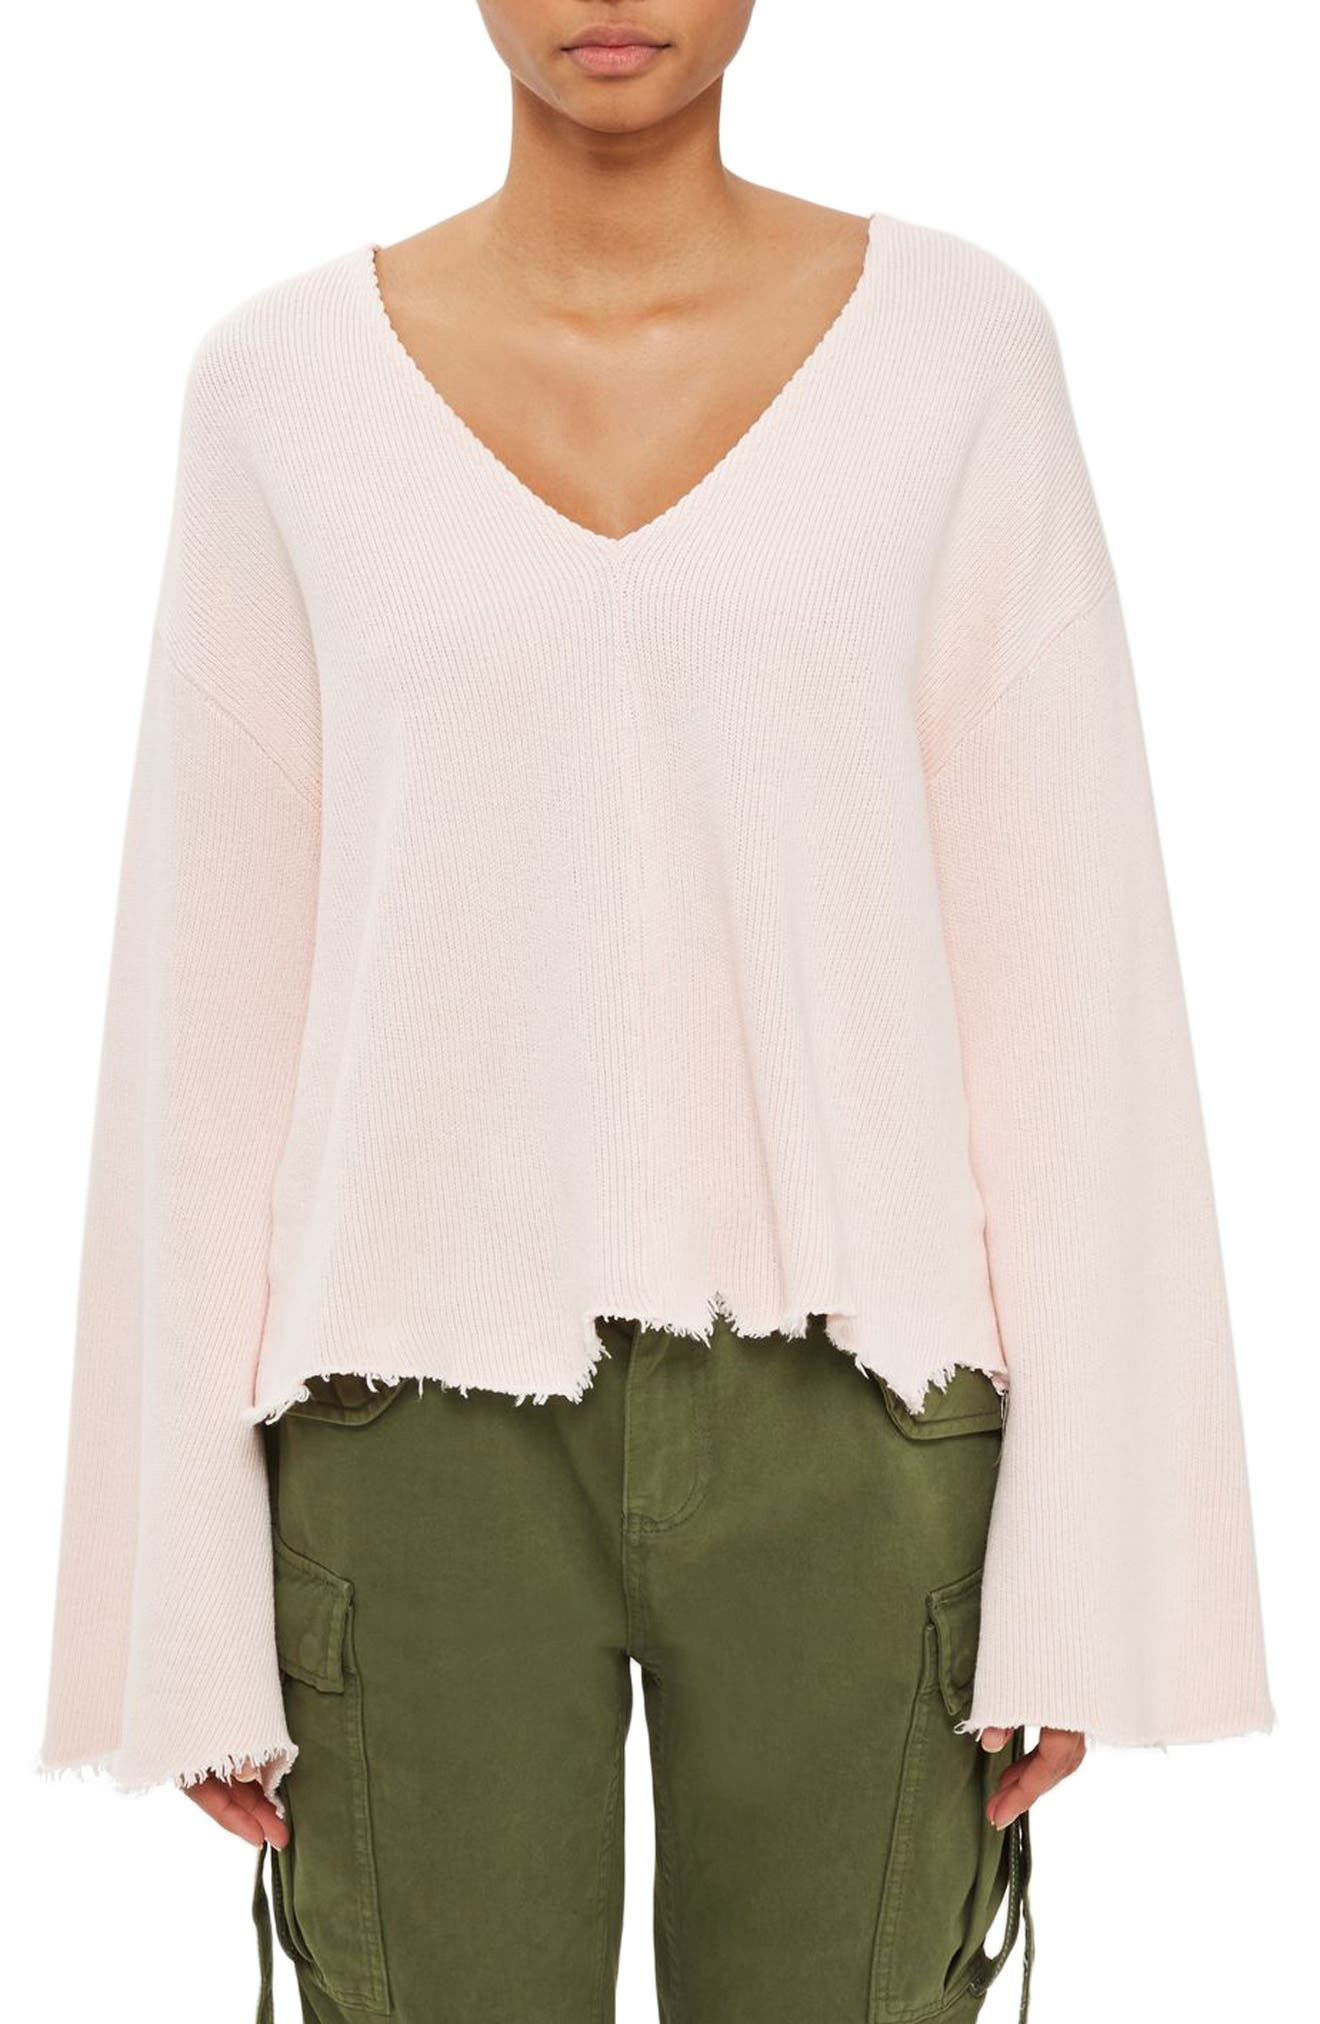 Topshop Boutique Raw Edge Flare Top